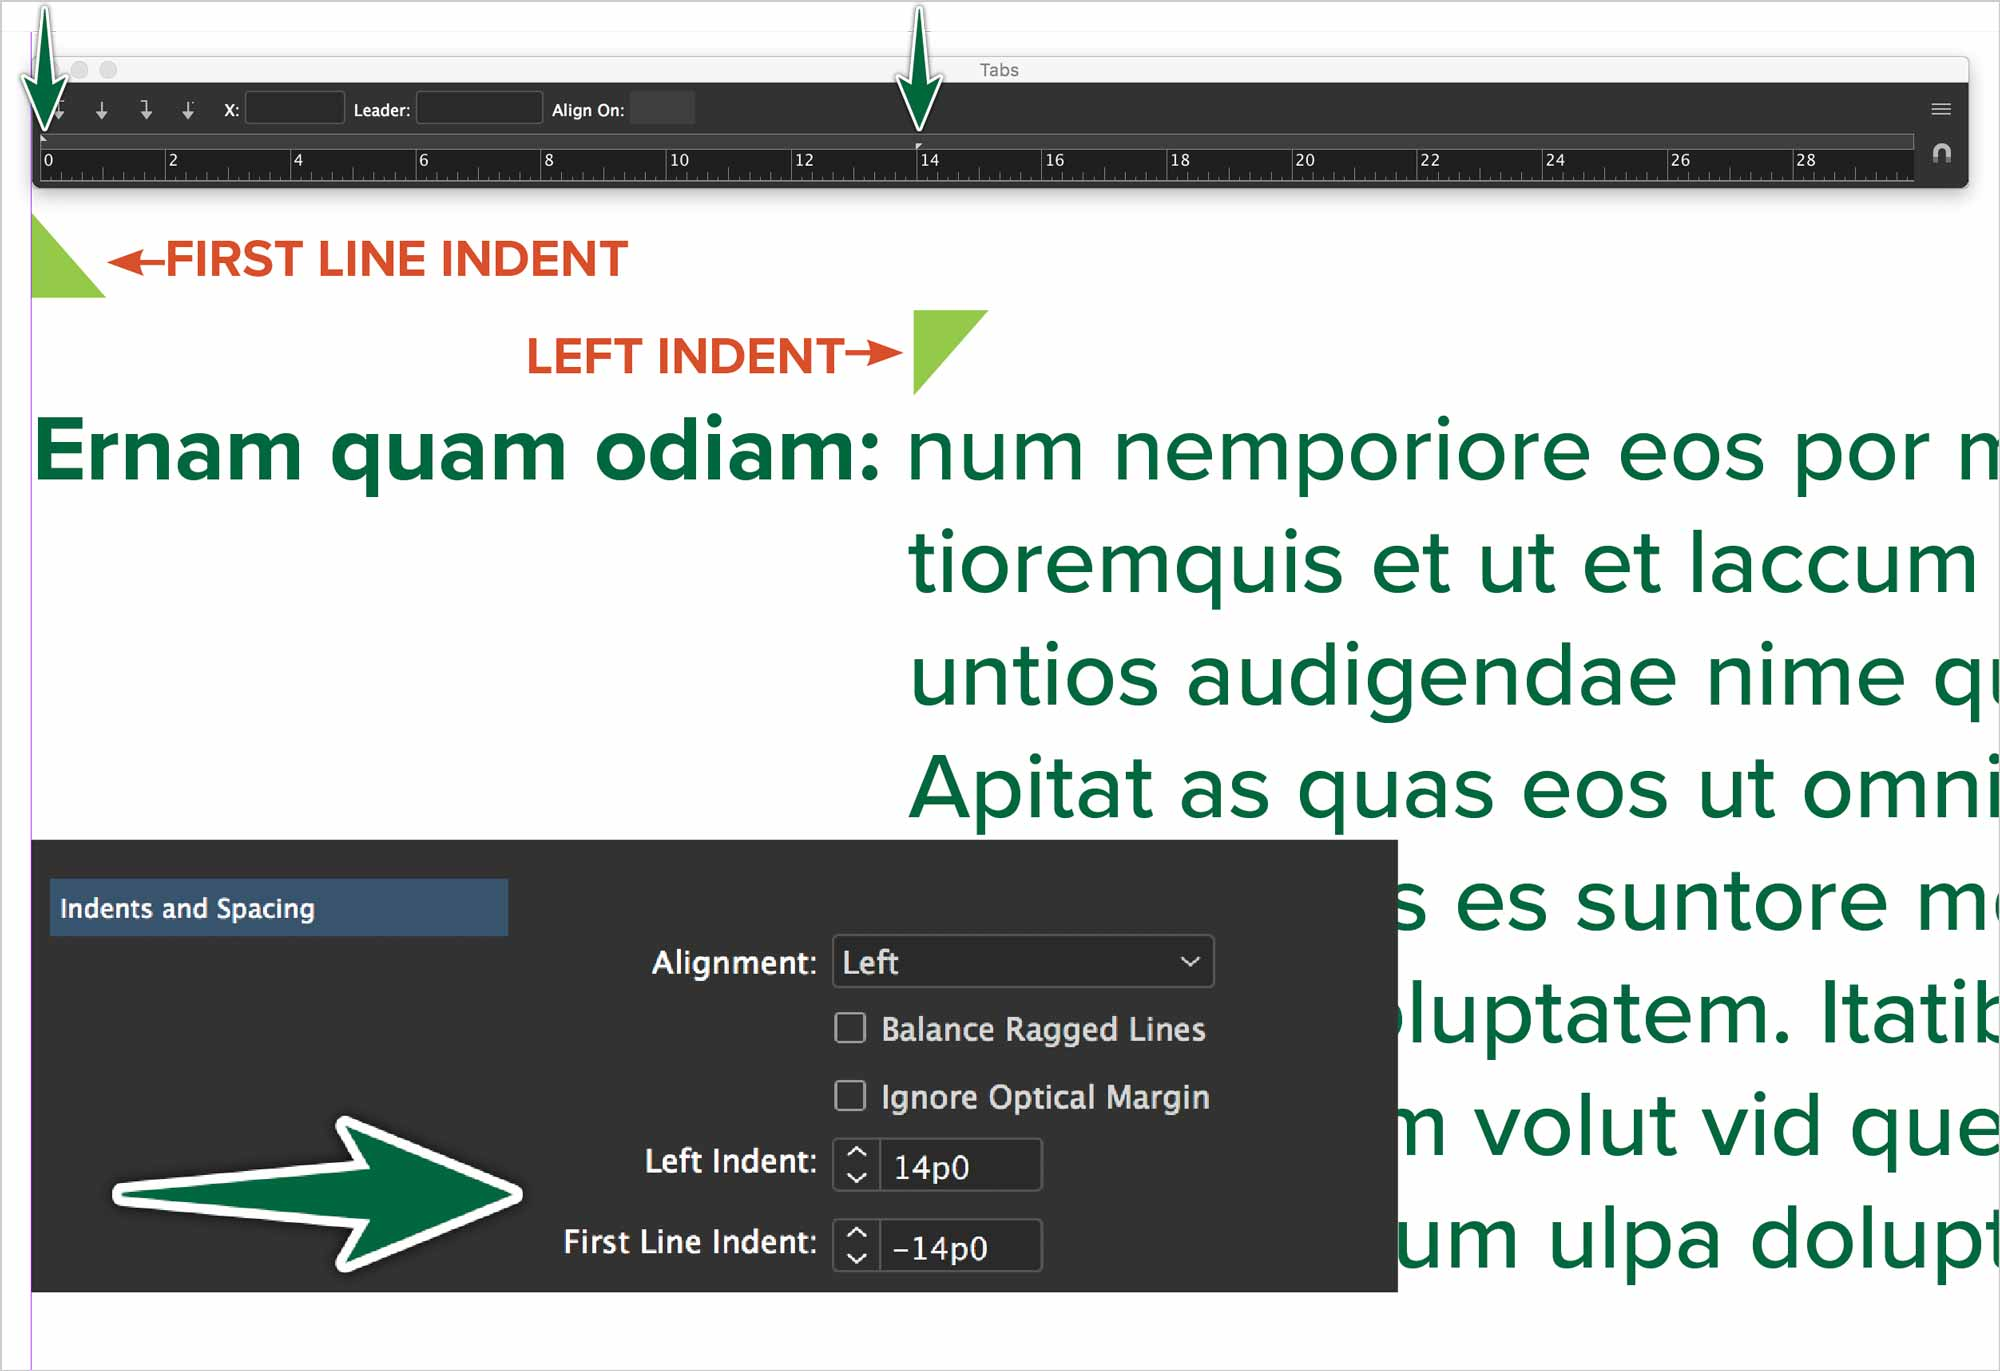 indesign-negative-first-line-indent